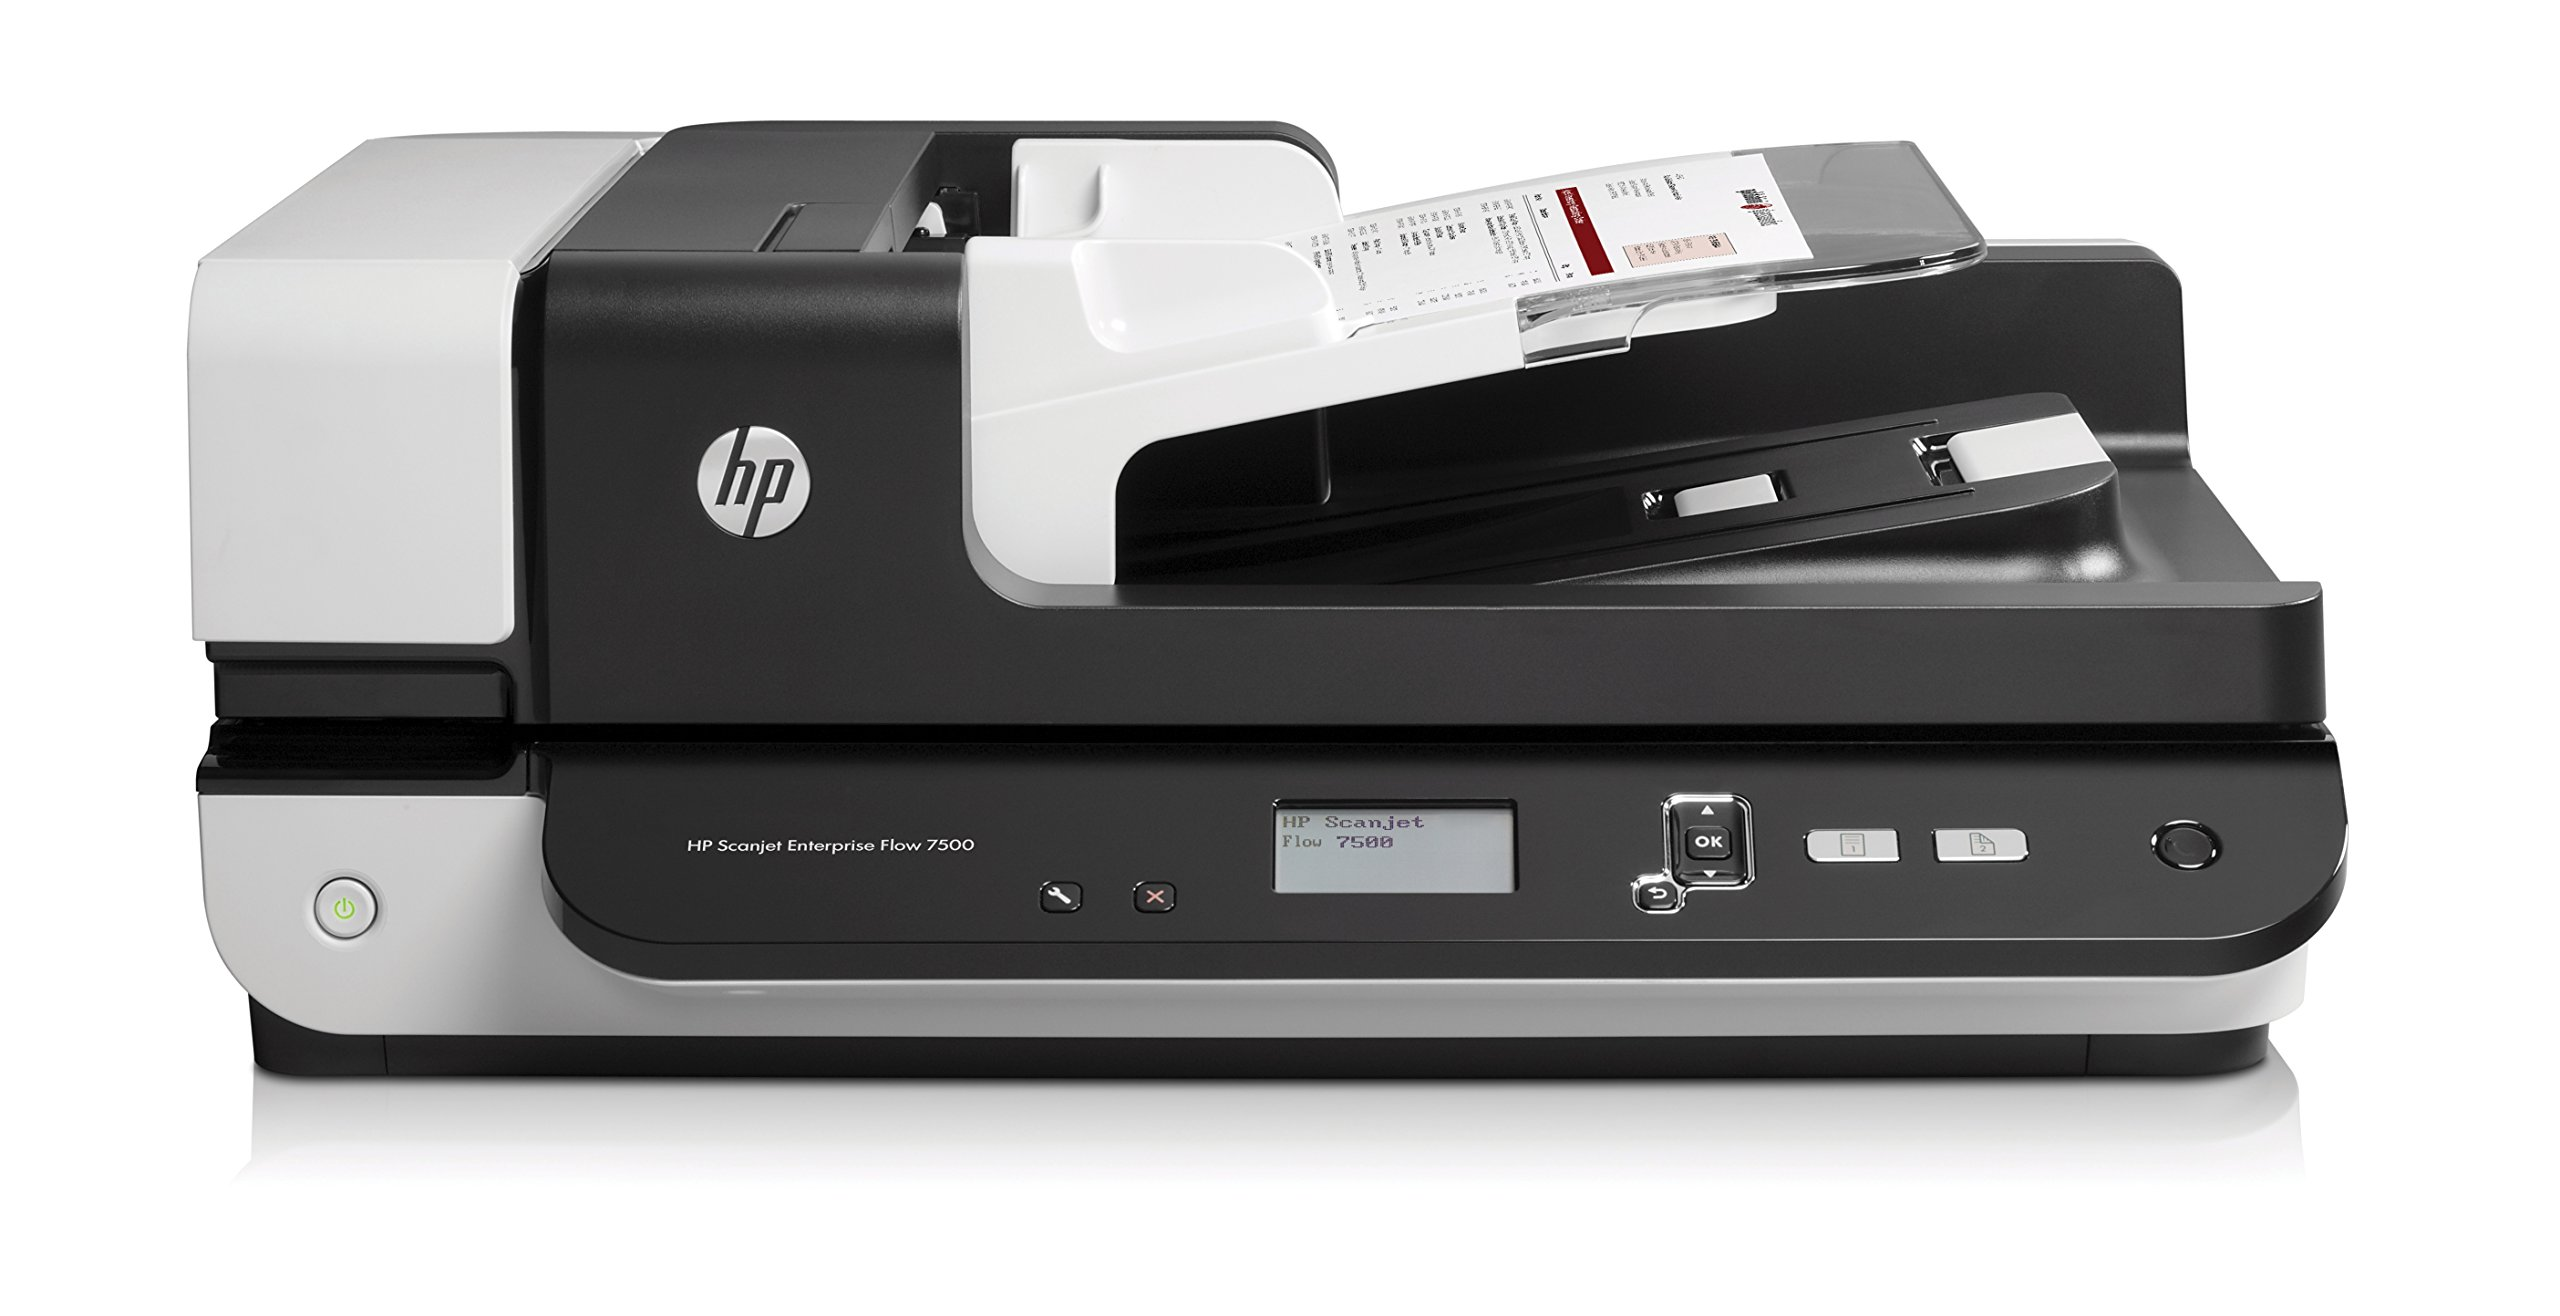 HP ScanJet Enterprise Flow 7500 Flatbed OCR Scanner by HP